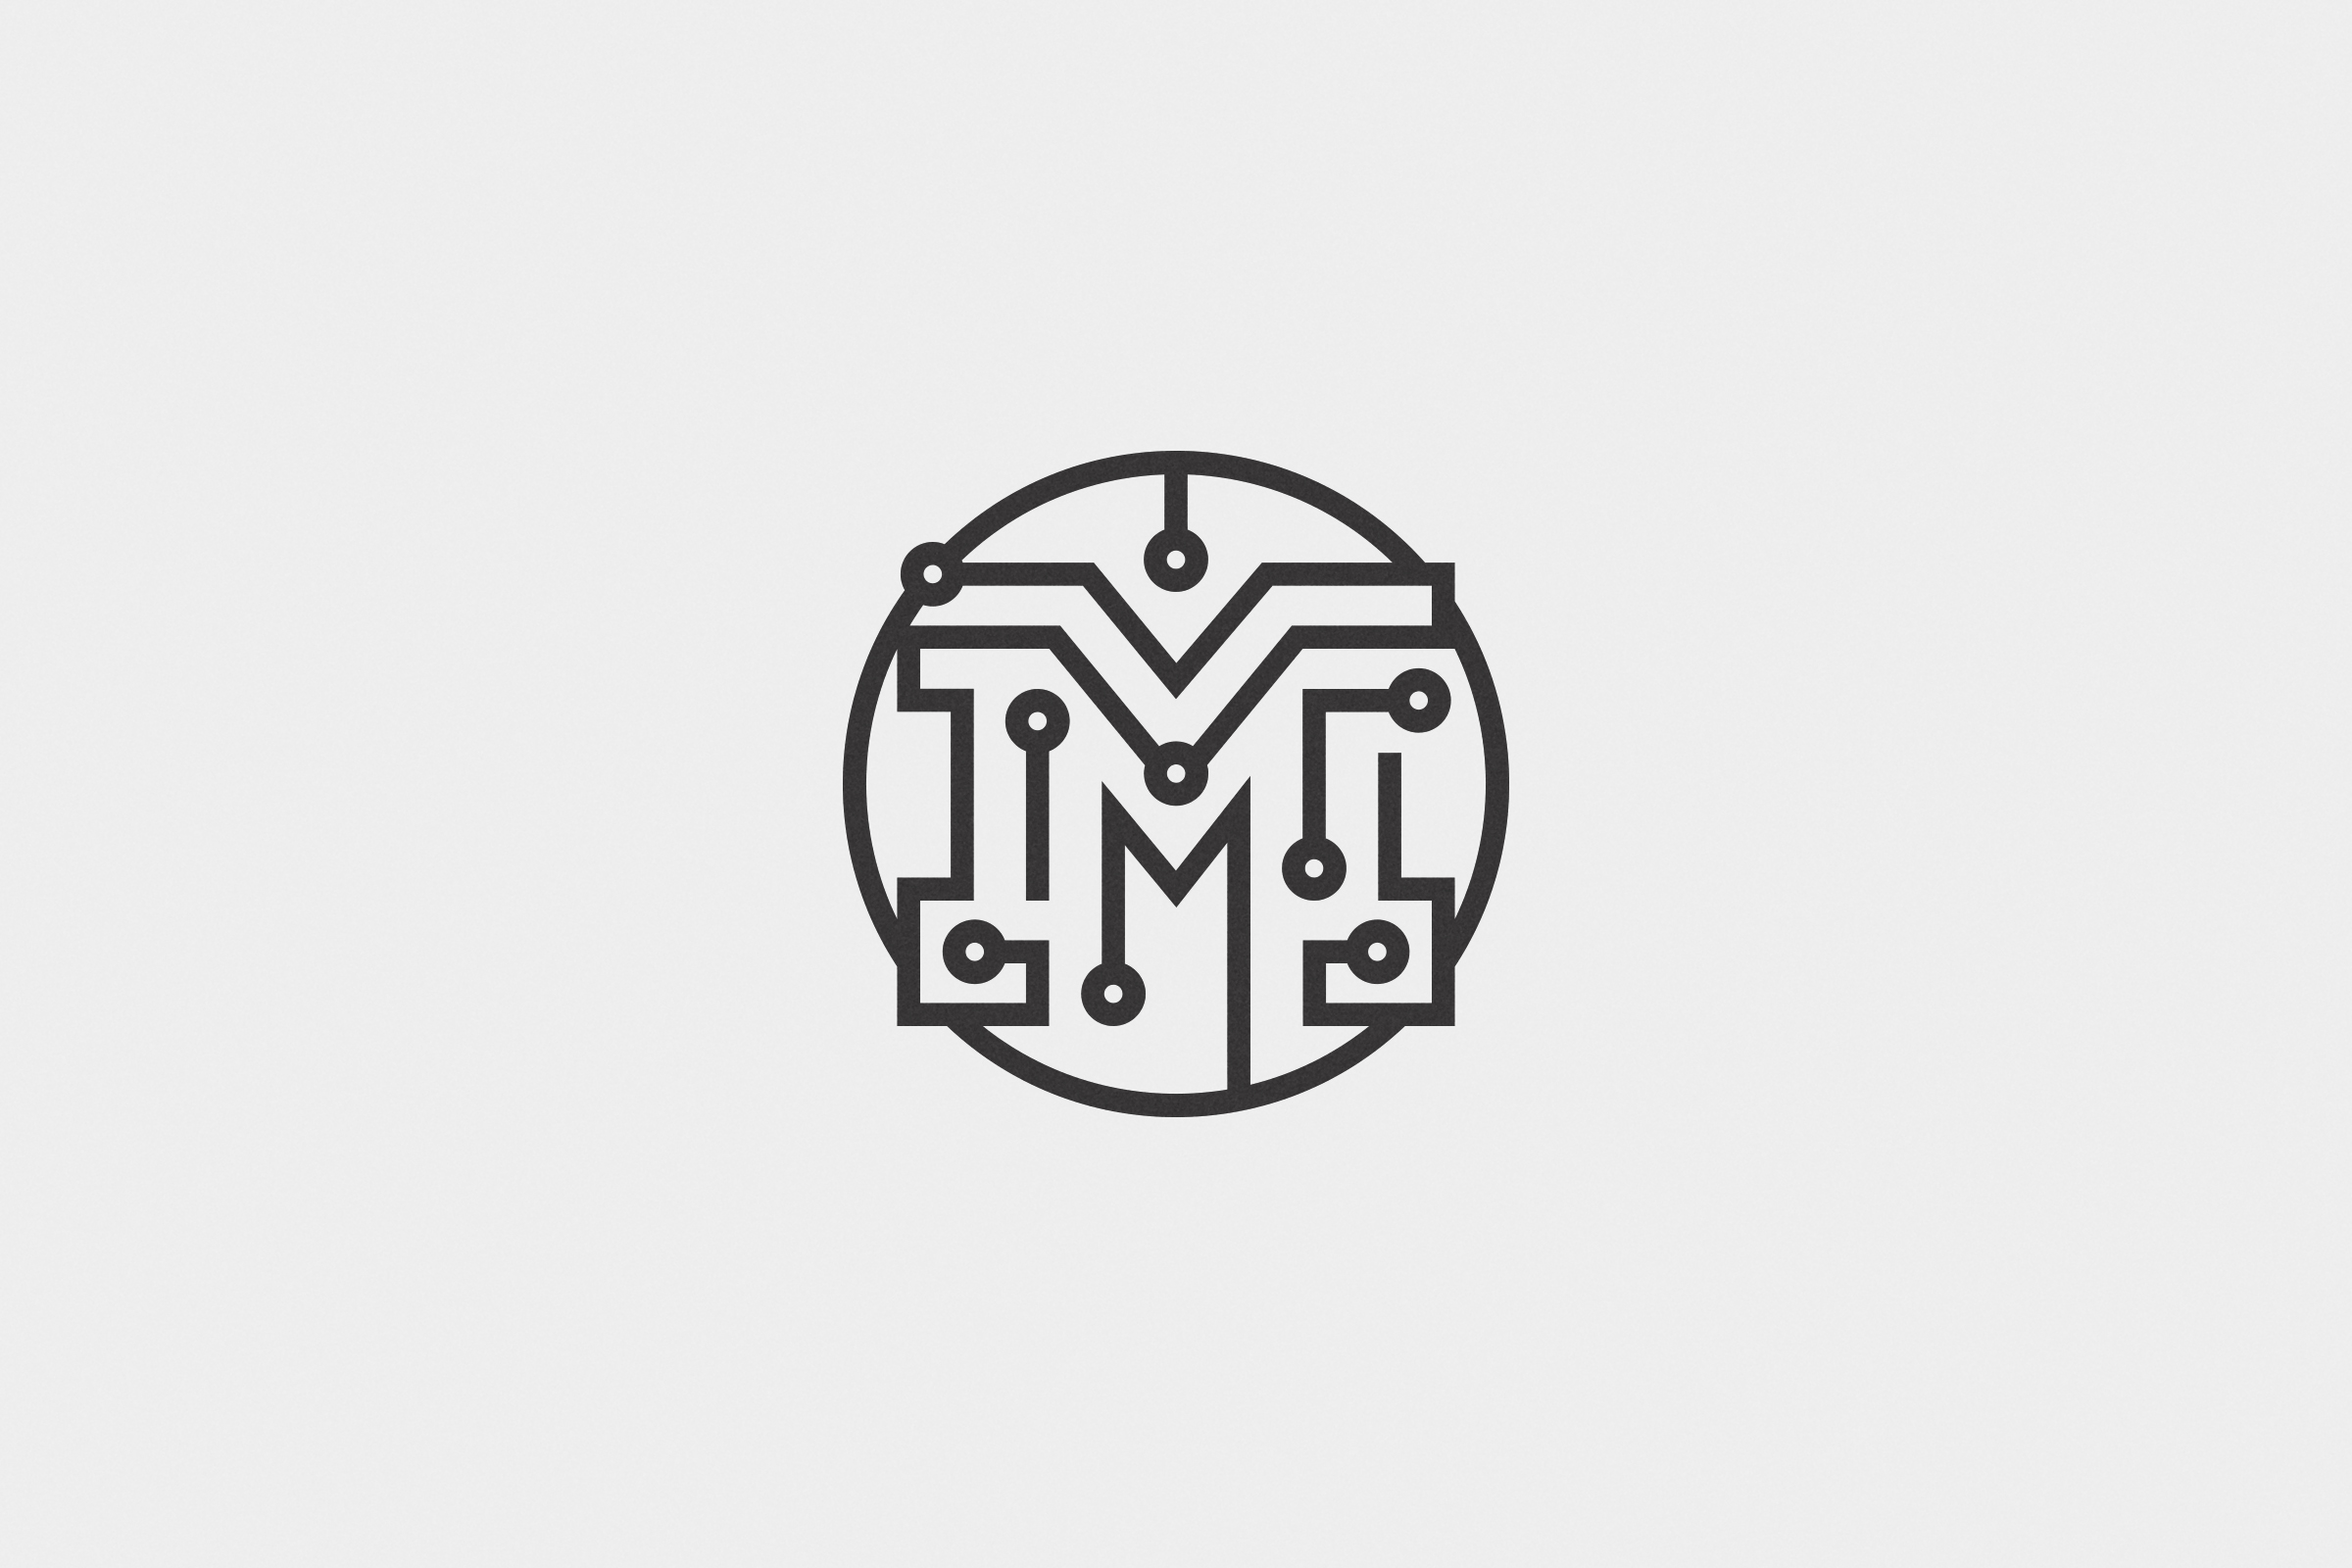 TBS_LogosAndMarks_Machine_3